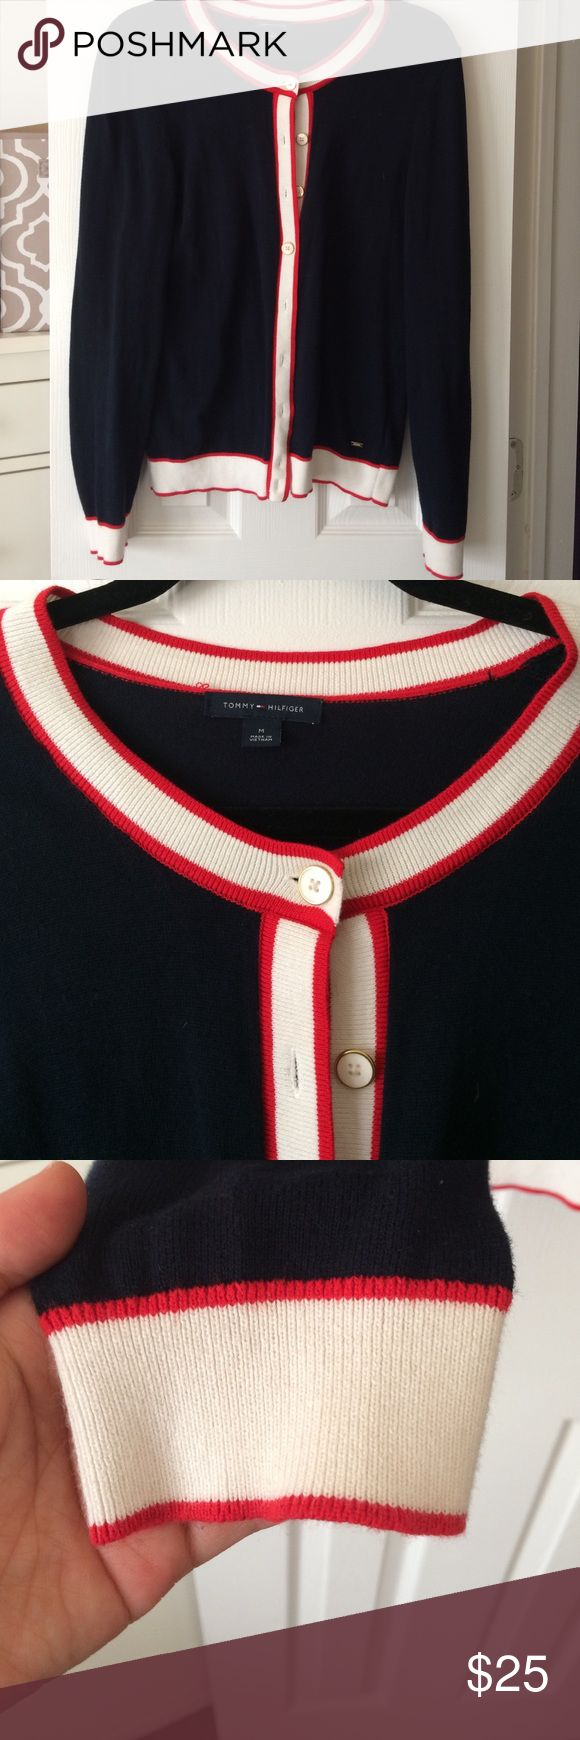 Nautical Cardigan, great for layering Tommy Hilfiger nautical navy cardigan with red and white accent. White and gold buttons. Great for work or play! Tommy Hilfiger Sweaters Cardigans